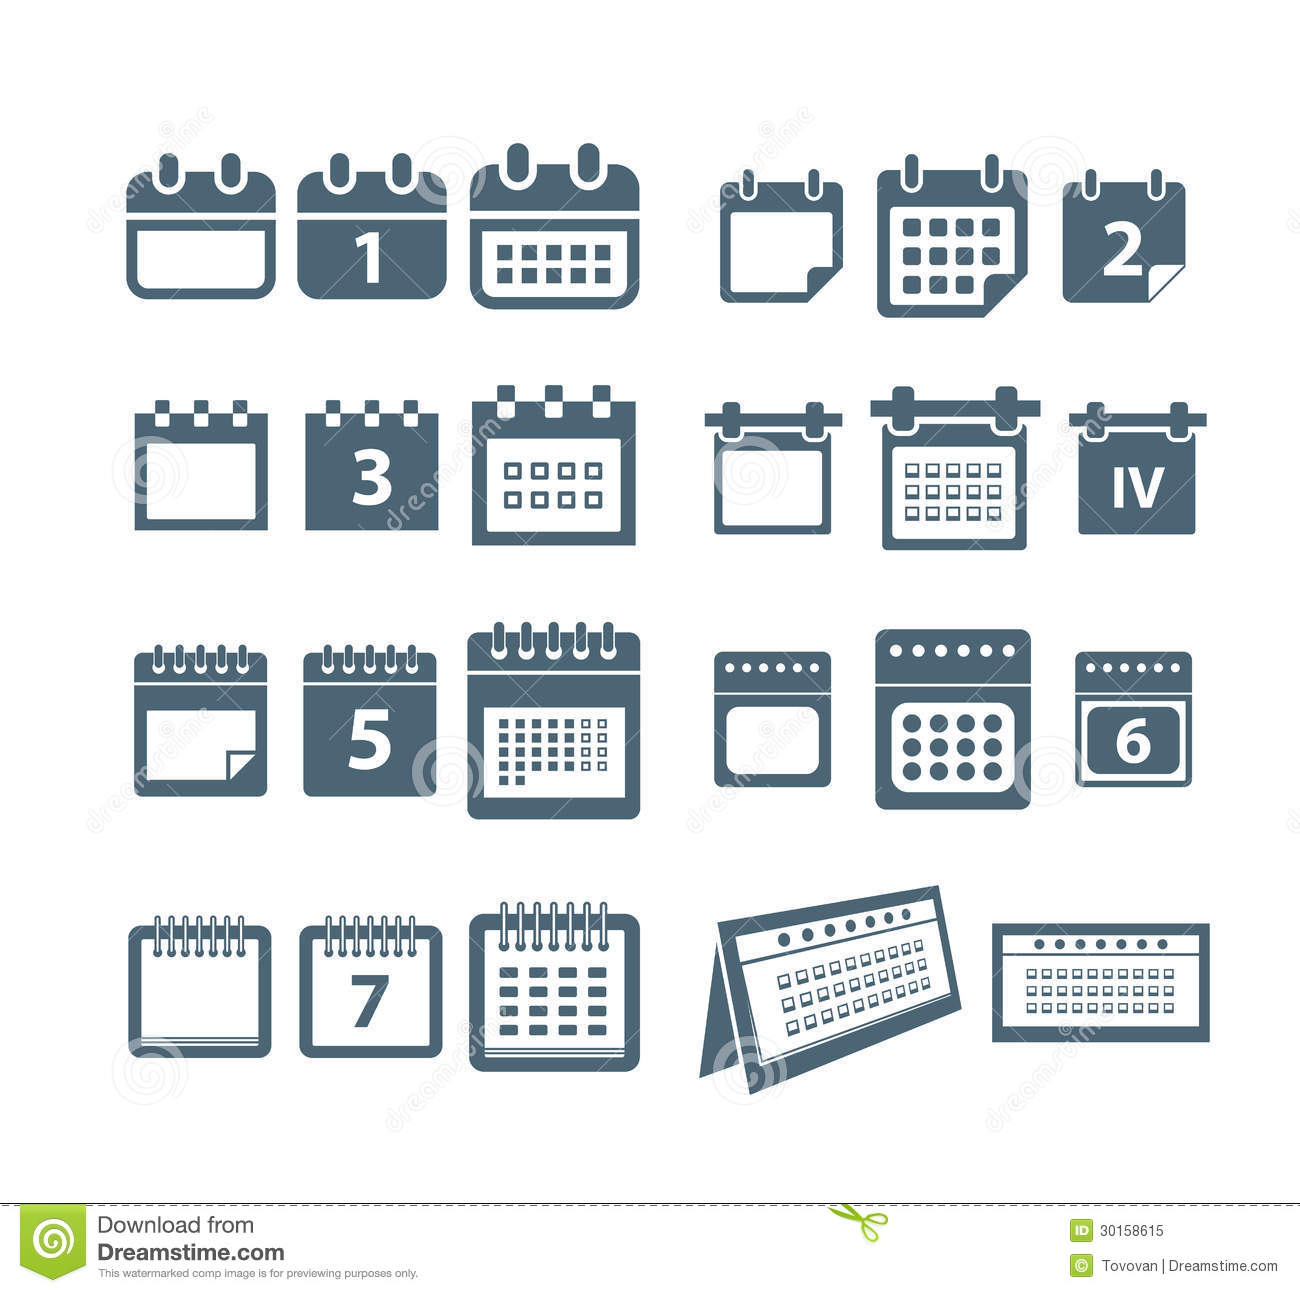 Calendar Web Icon : Calendar web icons collection royalty free stock photo